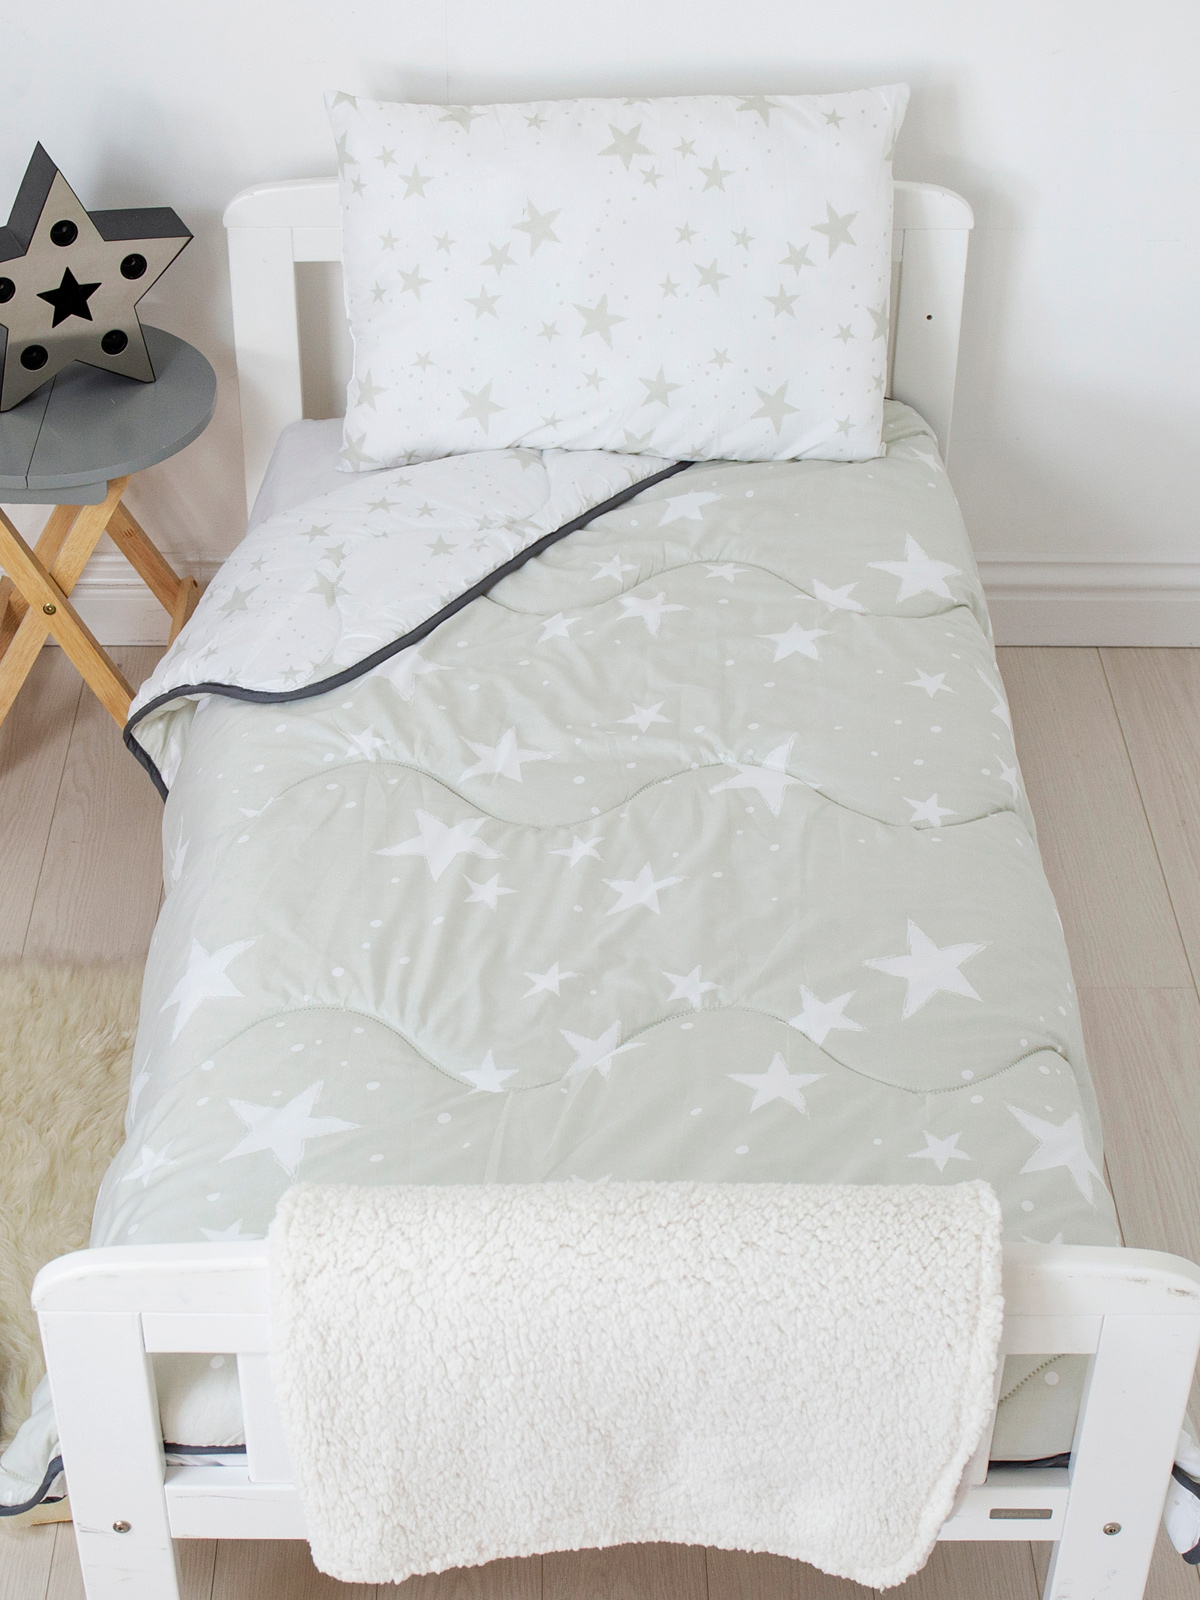 Grey Stars Coverless Junior 4 Tog Quilt and Filled Pillow Set